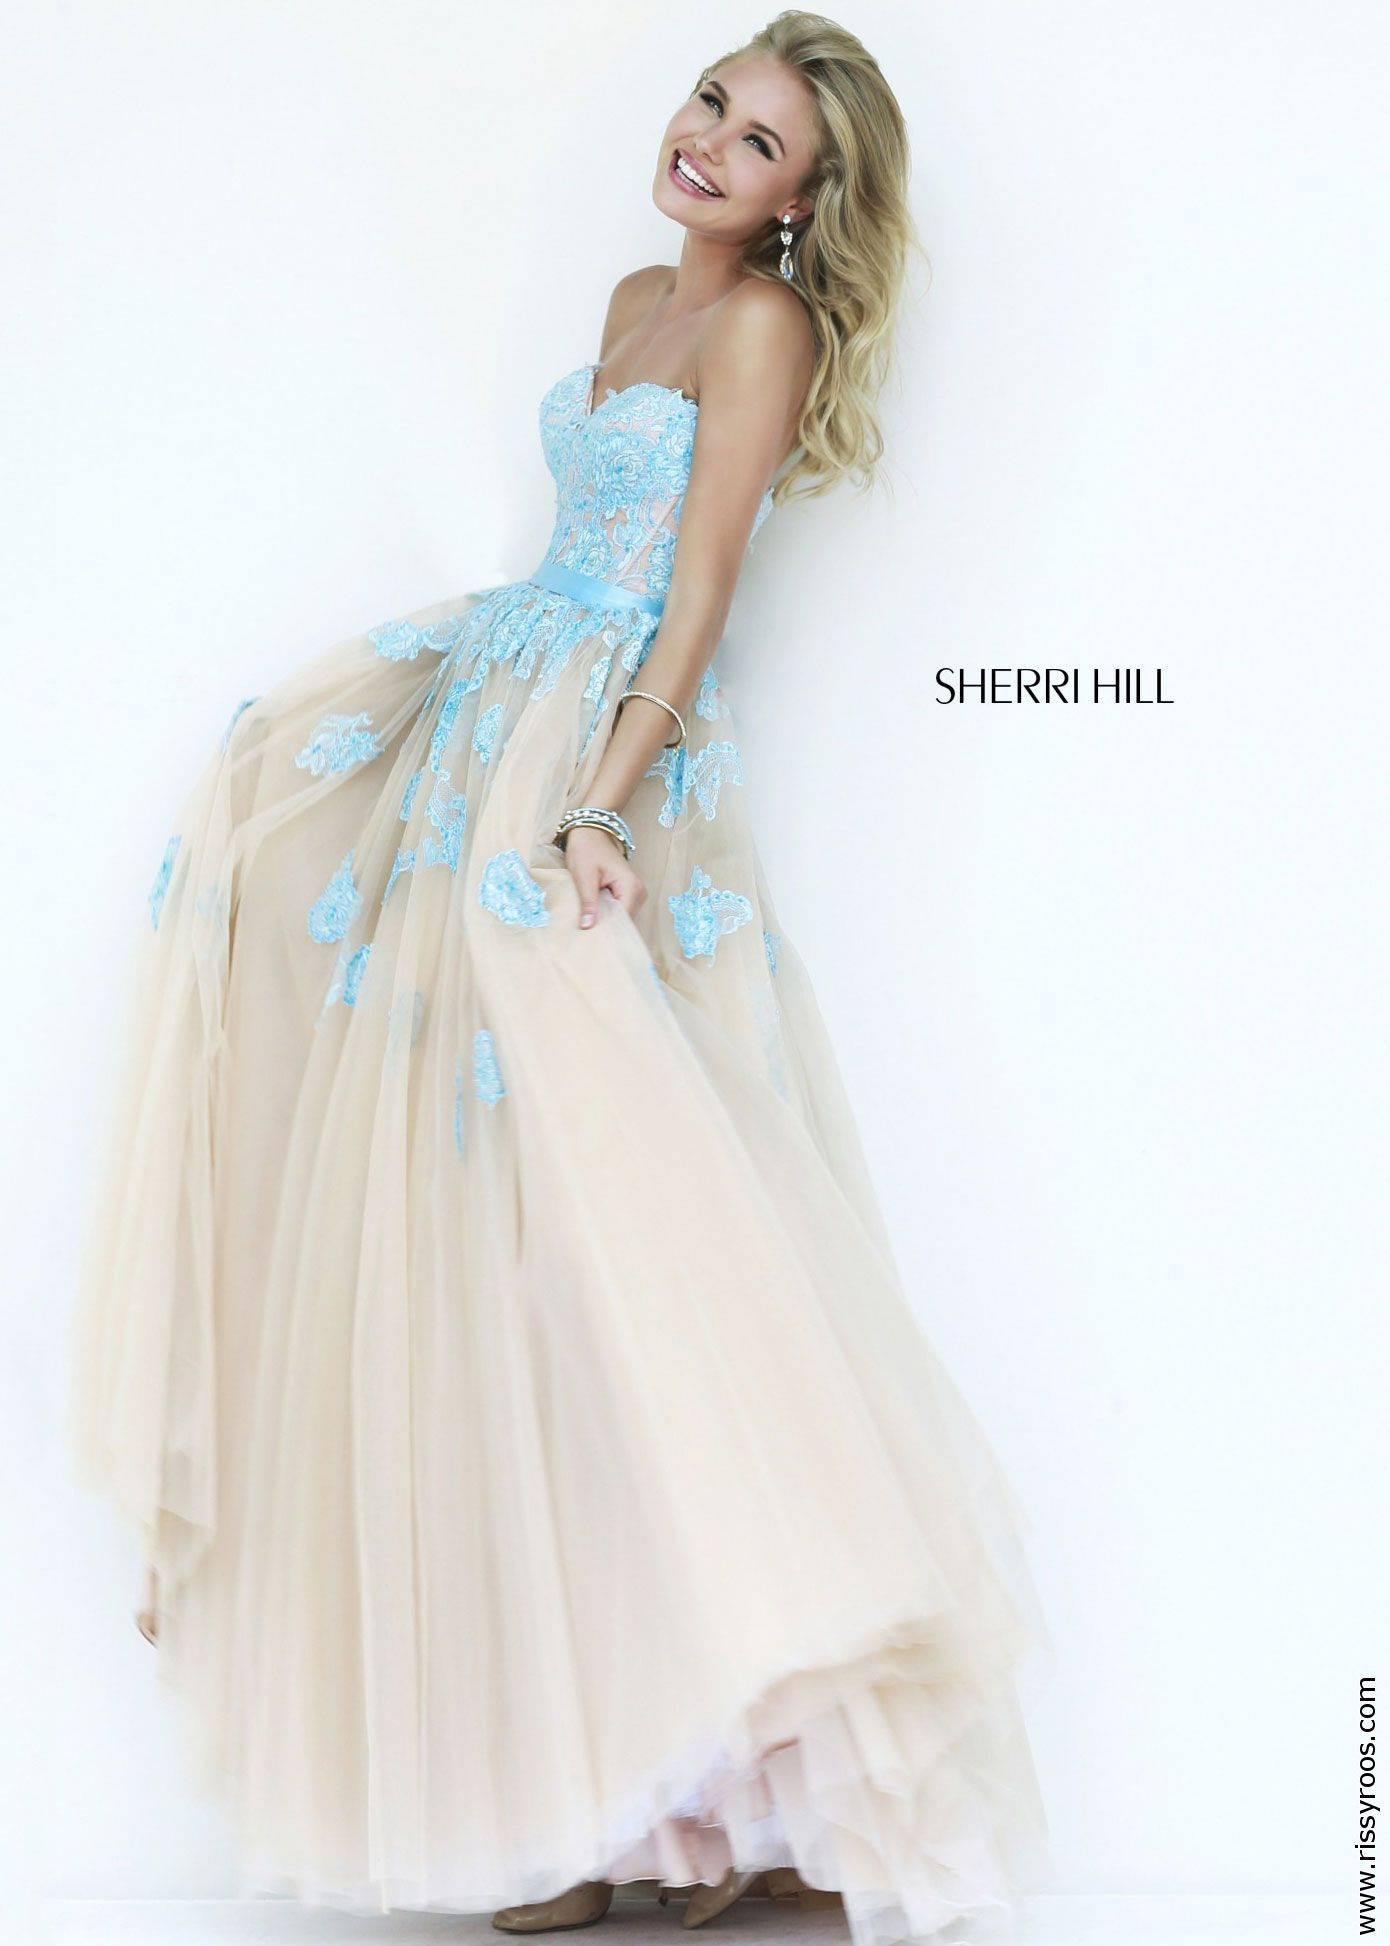 Sherri Hill 11200 Elegant Lace Ball Gown in Light Blue and Nude Tulle -  RissyRoos.